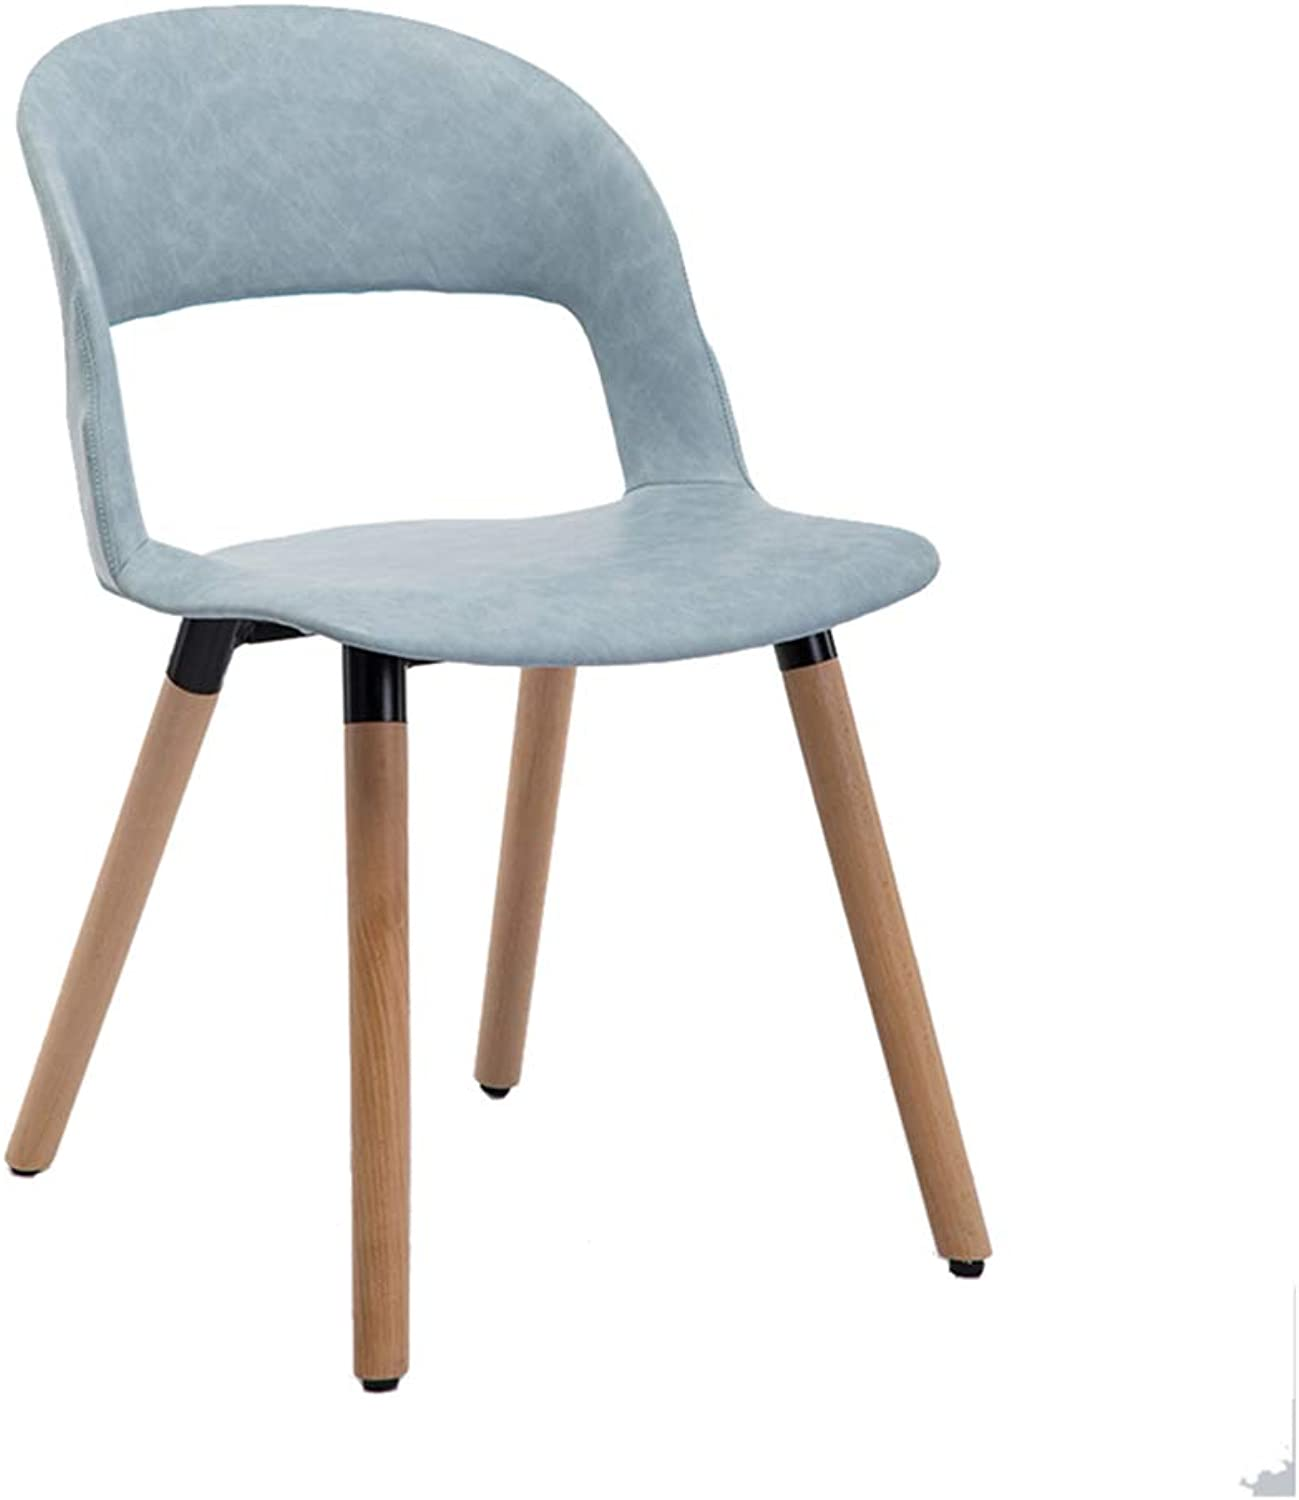 Nordic Solid Wood Dining Chair,Modern Creative Leisure Chair, PP Plastic Makeup Stool,for Restaurant Pub Cafe Living Room Bedroom